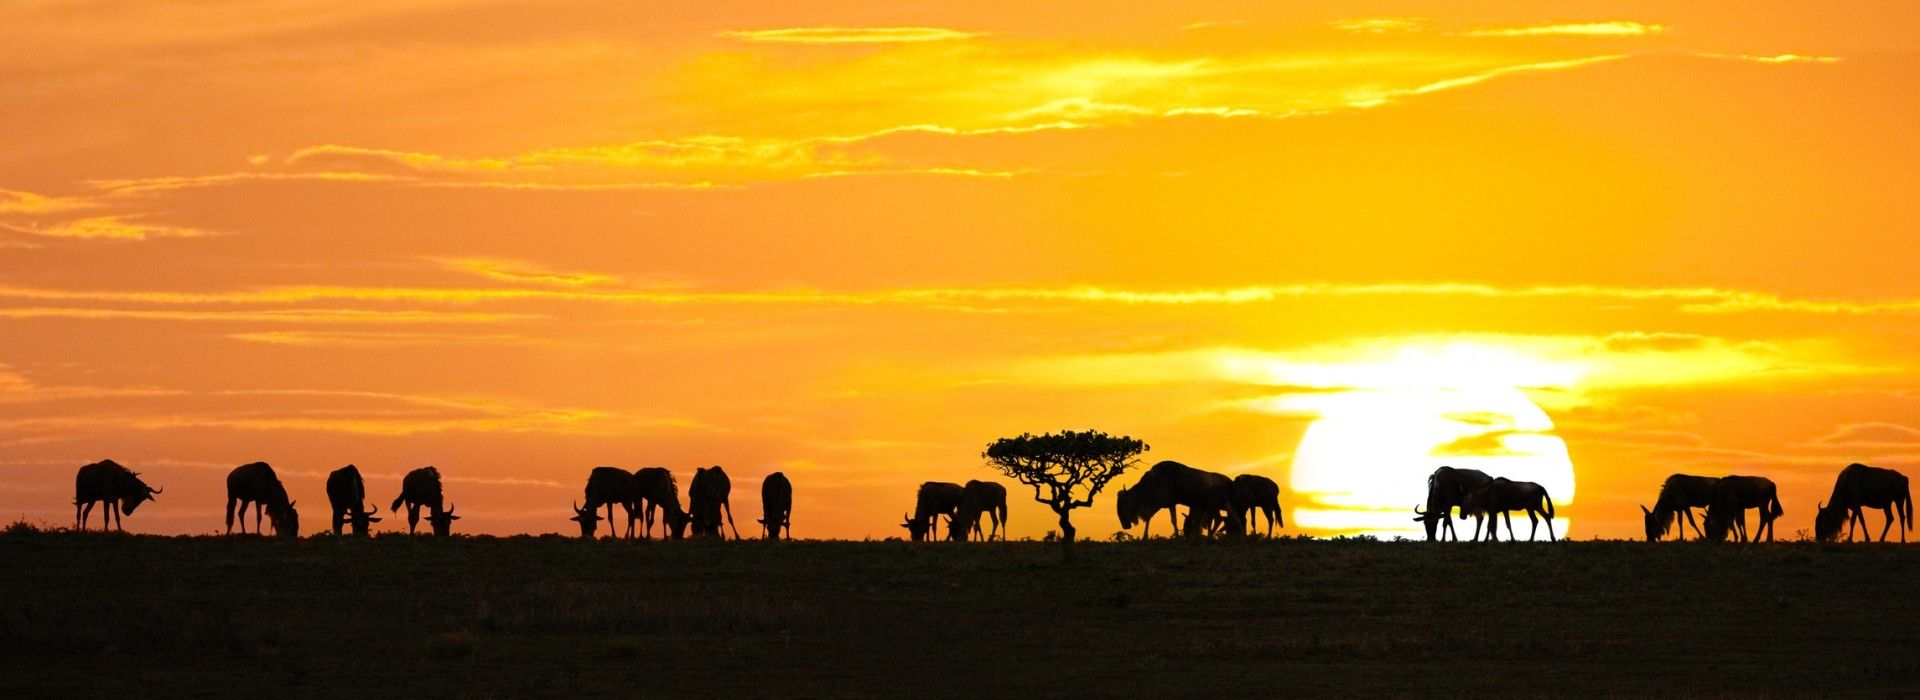 Explorer Tours in Serengeti National Park